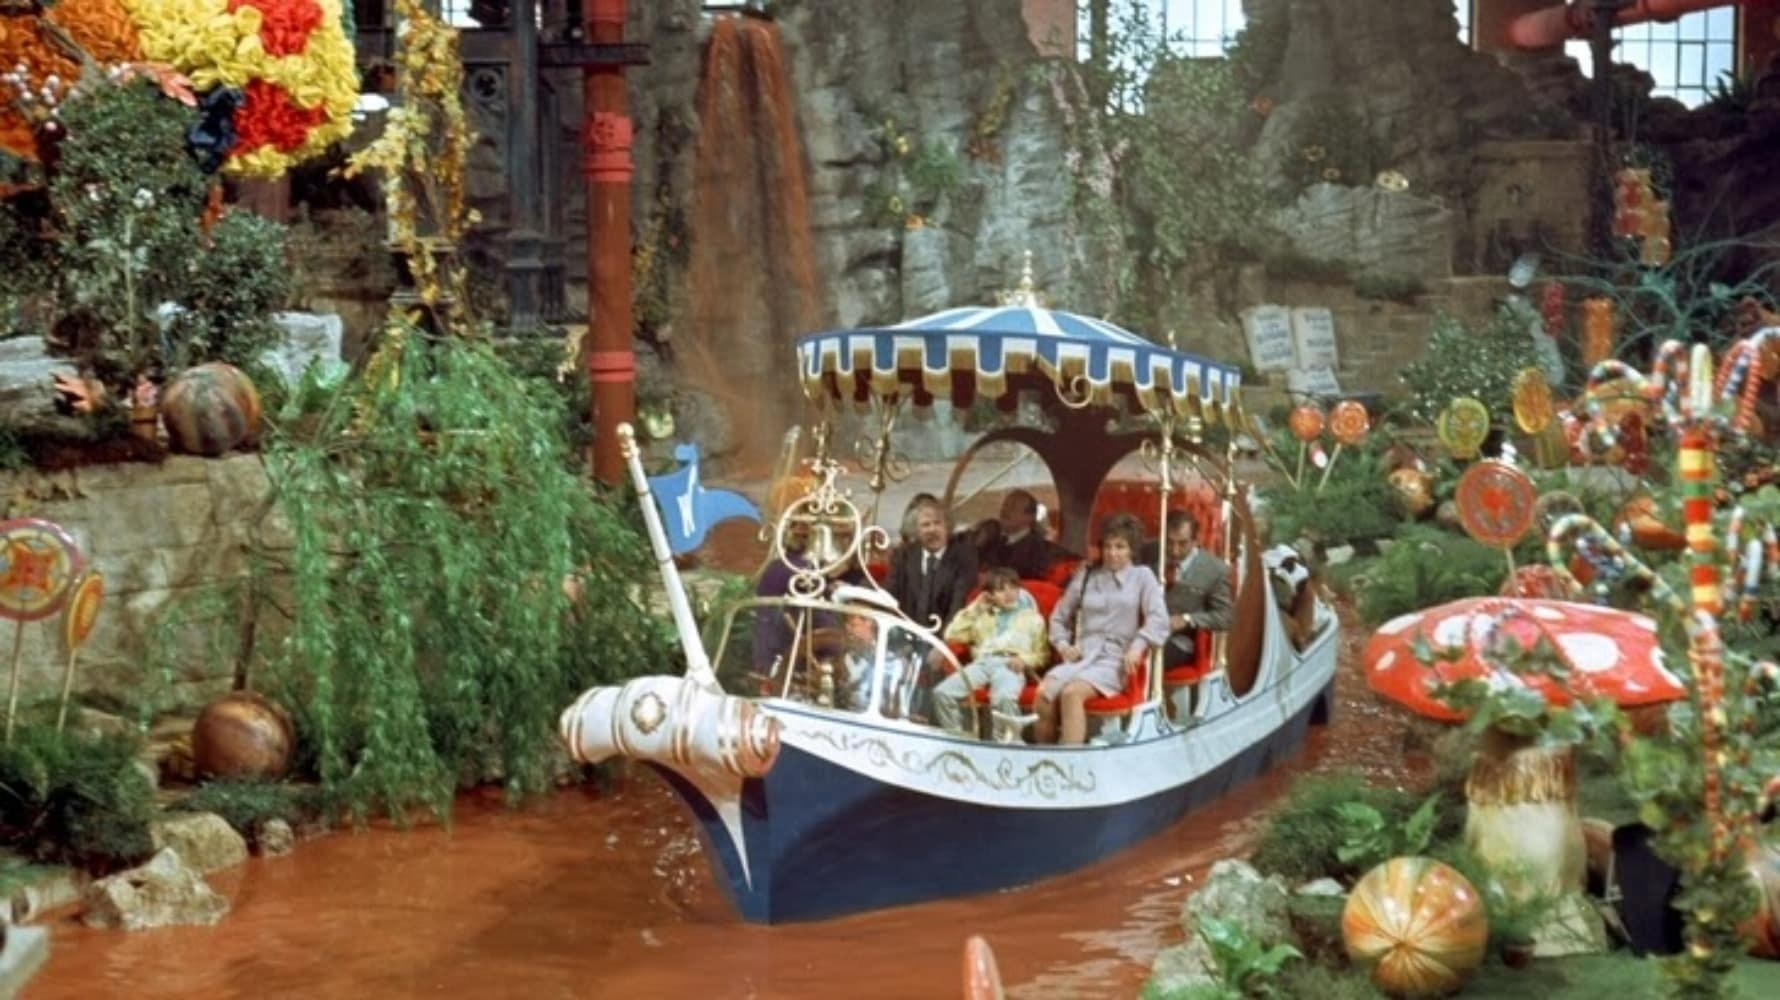 The cast glides down Willy Wonka's chocolate river in a boat